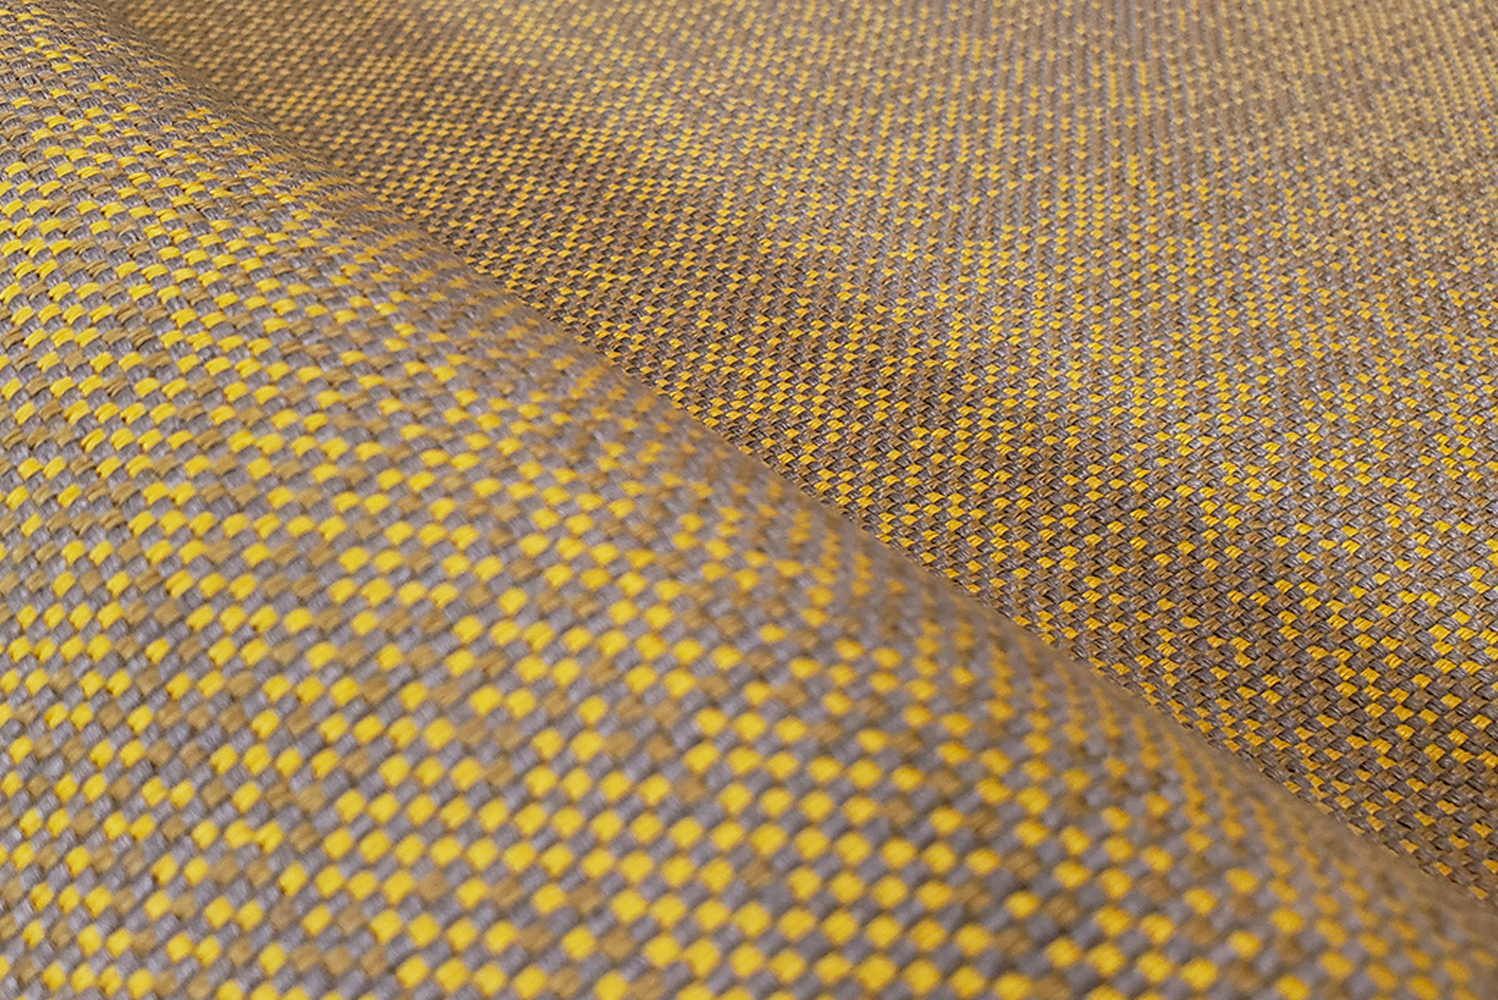 Walker is a digitally pixelated texture on jacquard woven textile, with highly contrasted dyes giving Walker a worn-out effect.